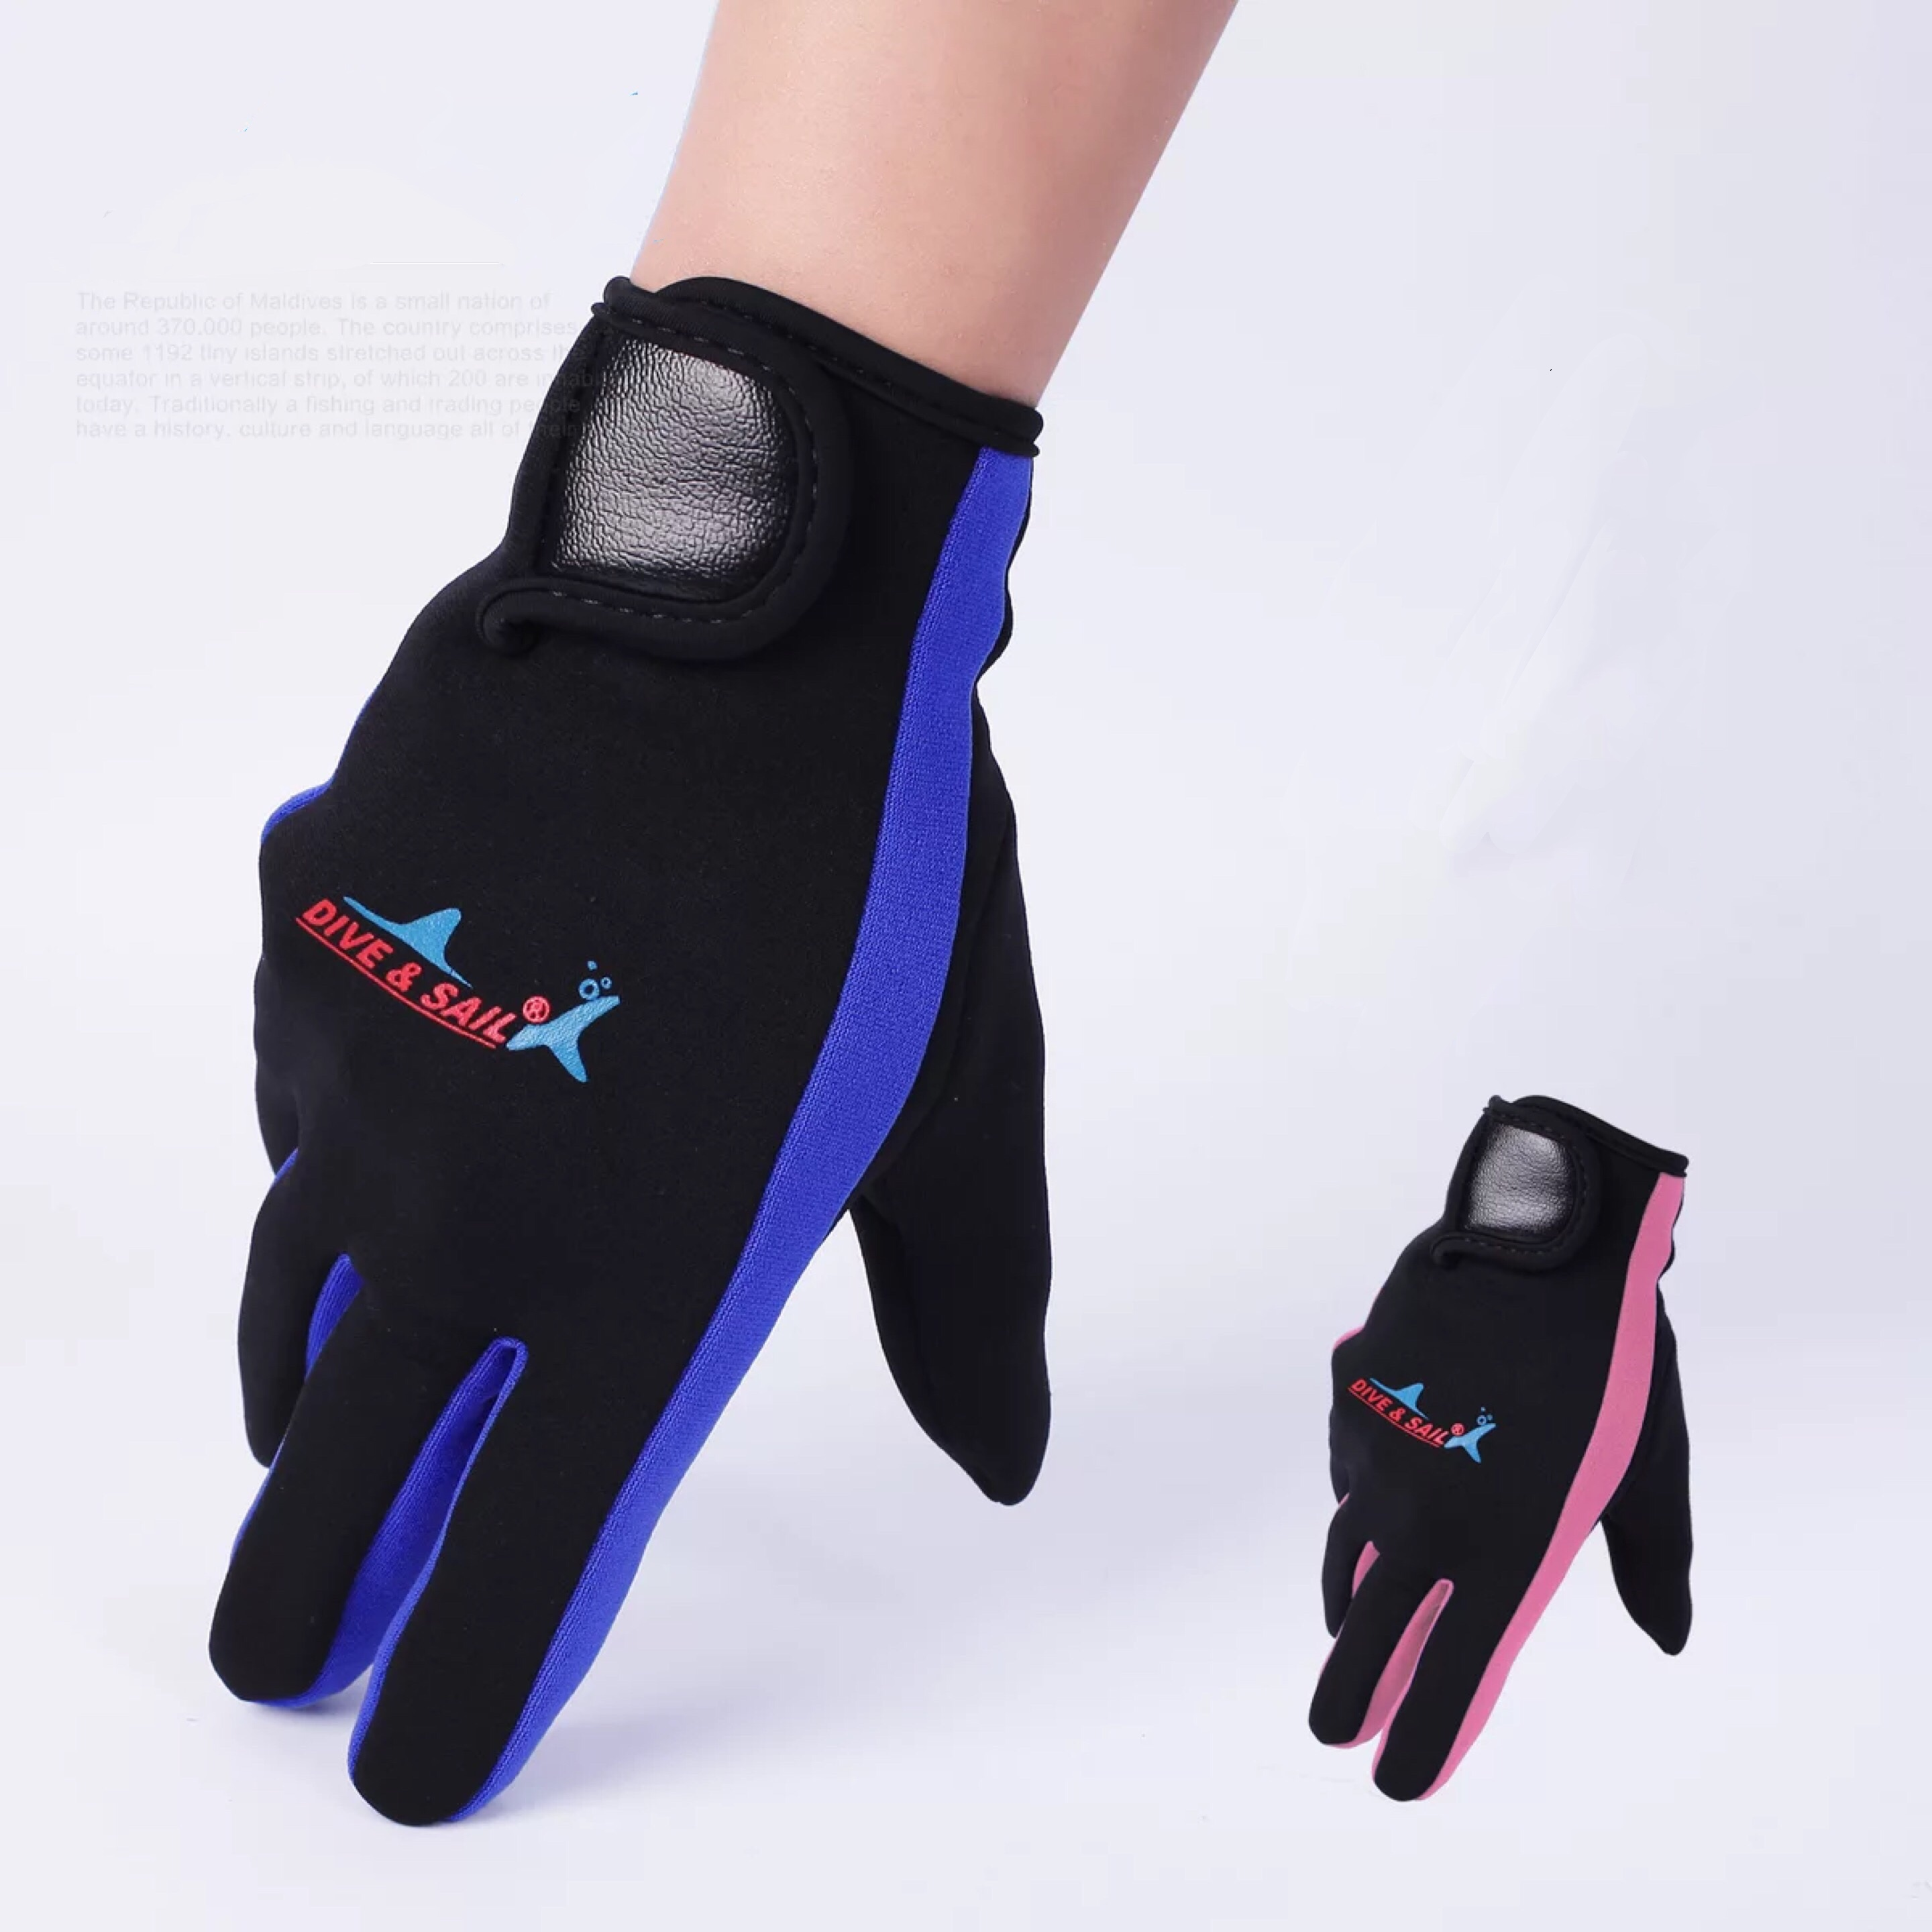 Women Men Swimming & Diving Gloves 1.5mm Neoprene Swimming Diving Gloves Anti-slip Warm Swimming Snorkel Surf Gloves Drop Ship